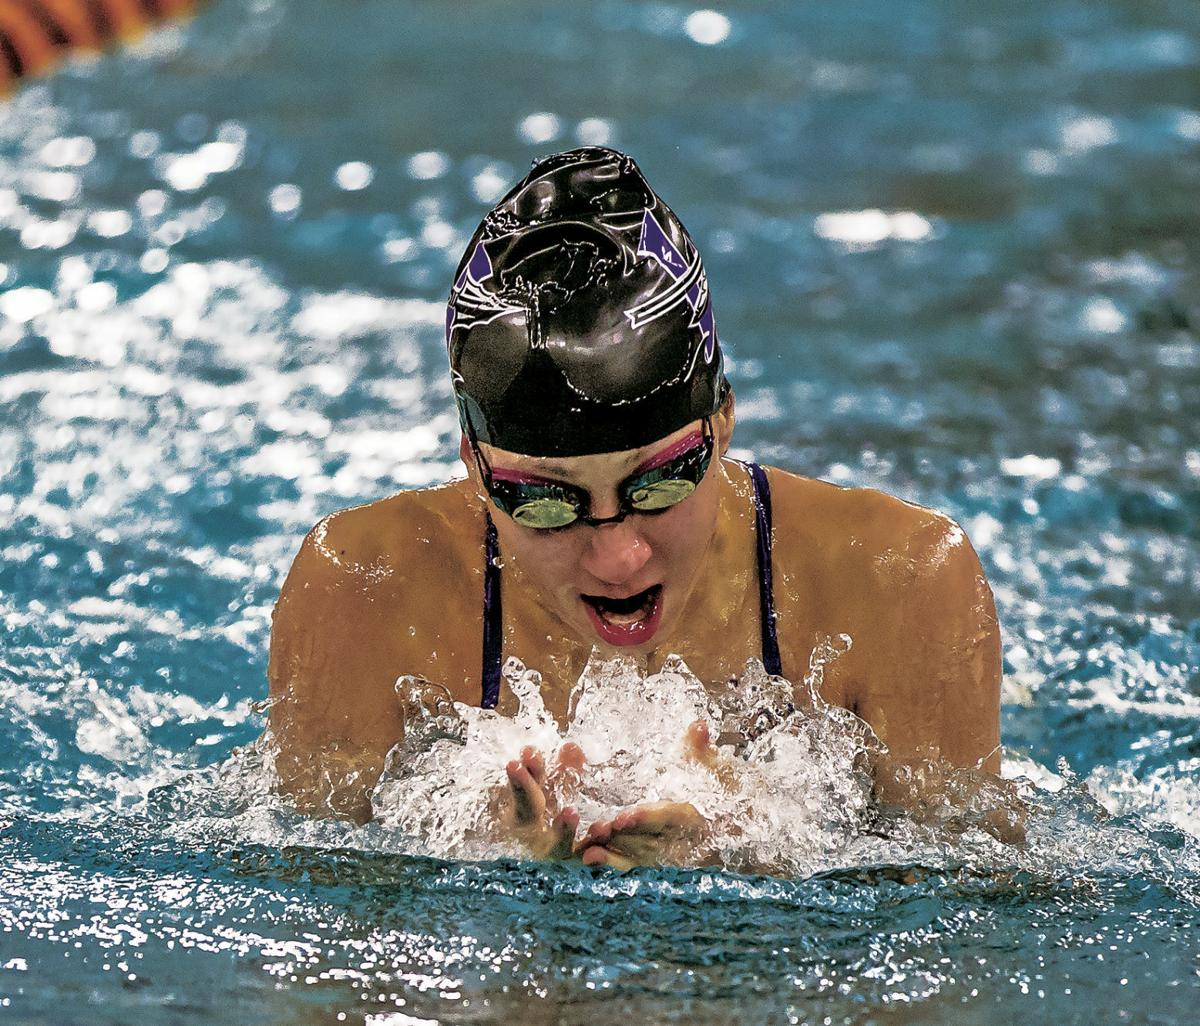 Waunakee Swimmers Aiming For Fifth Straight Conference